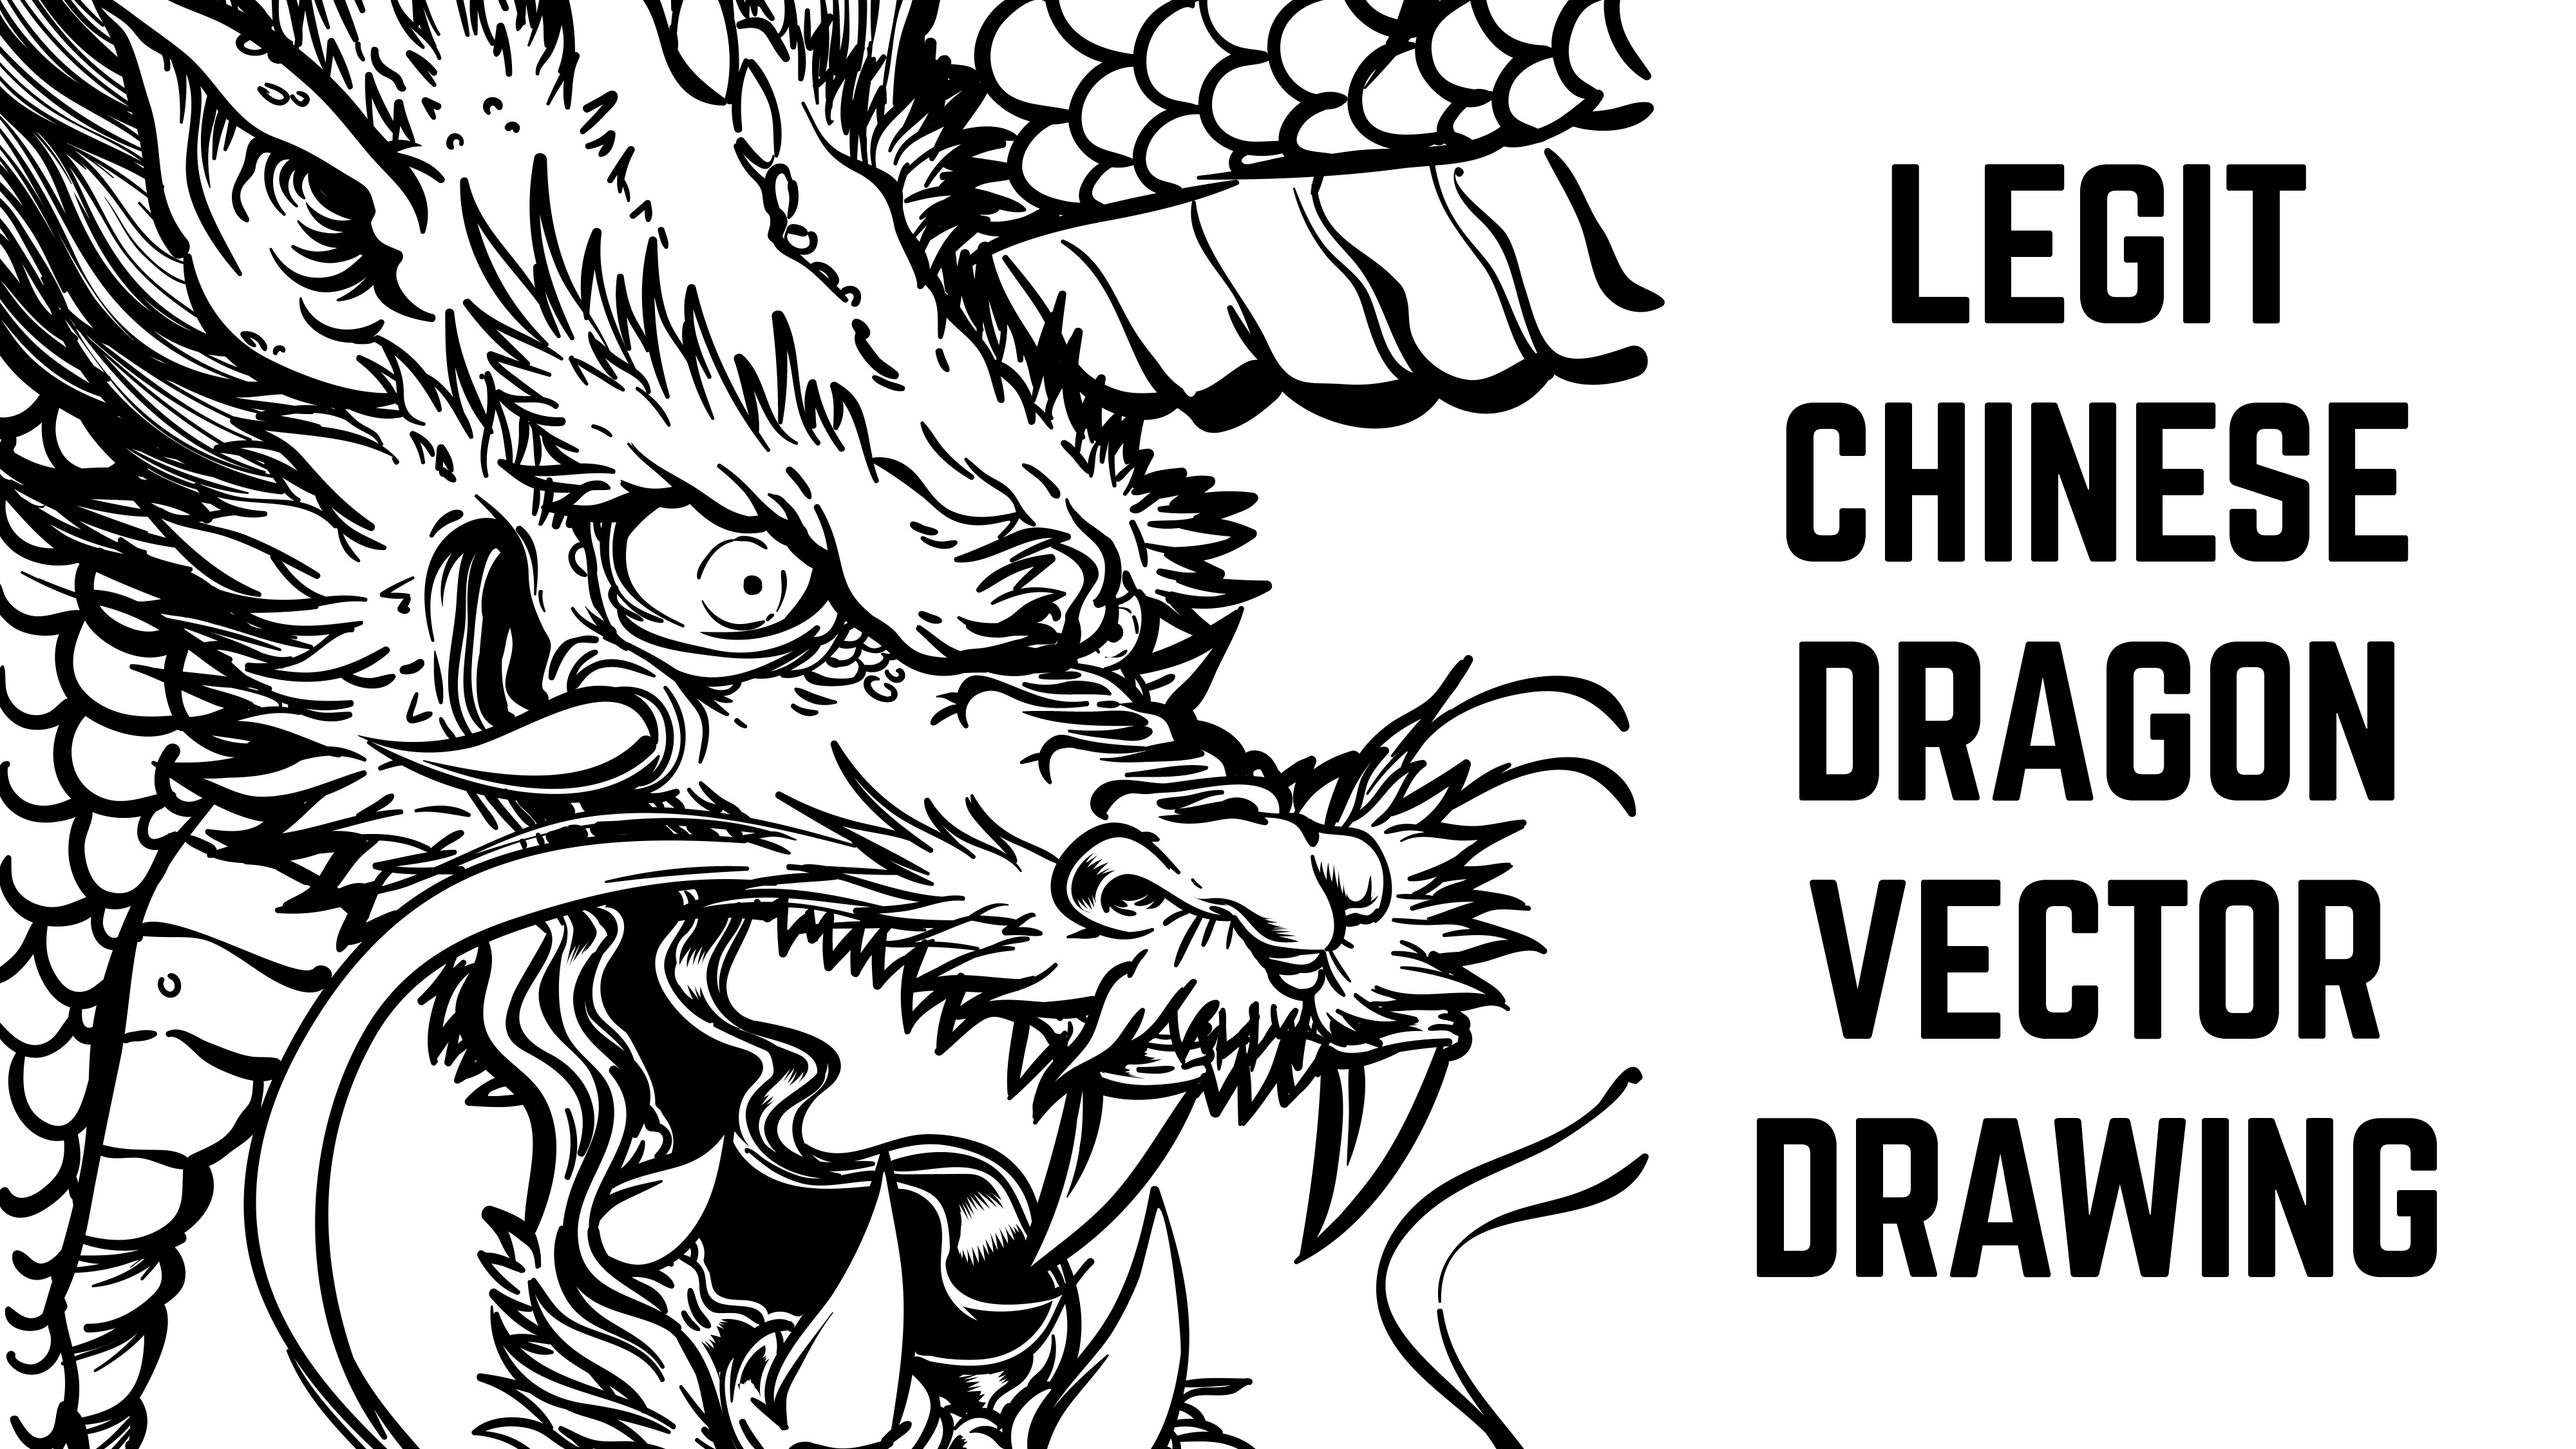 4000x2250 Legit Chinese Dragon Timelapse Vector Drawing